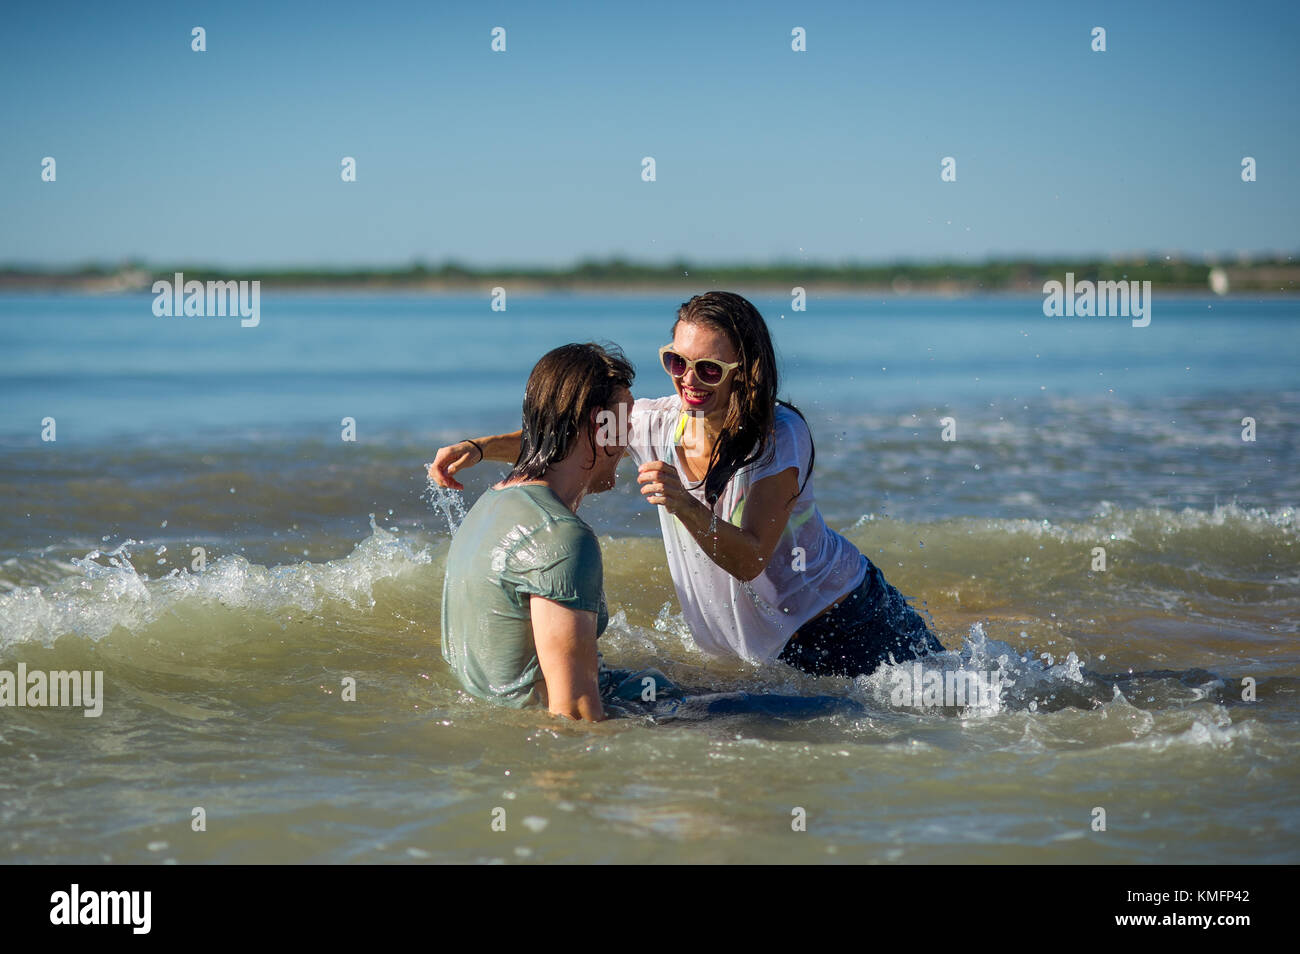 Young couple bathing in the sea. Guy and girl are merrily floundering in the water. - Stock Image